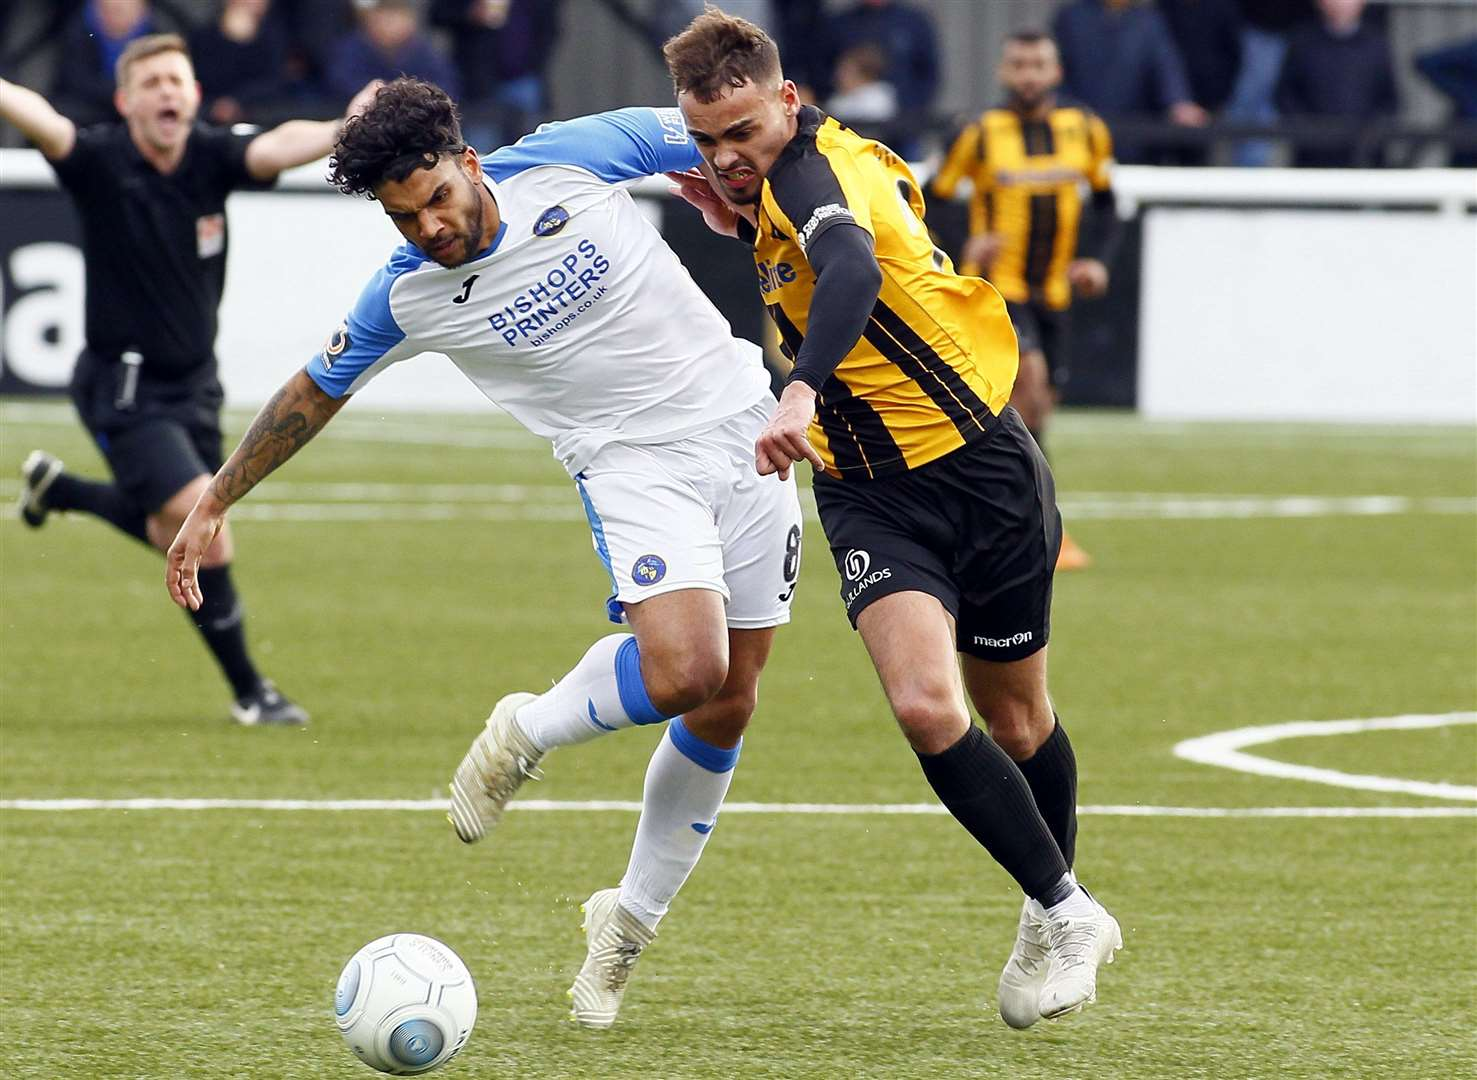 Michael Phillips won the player-of-the-year award at Maidstone last season Picture: Sean Aidan